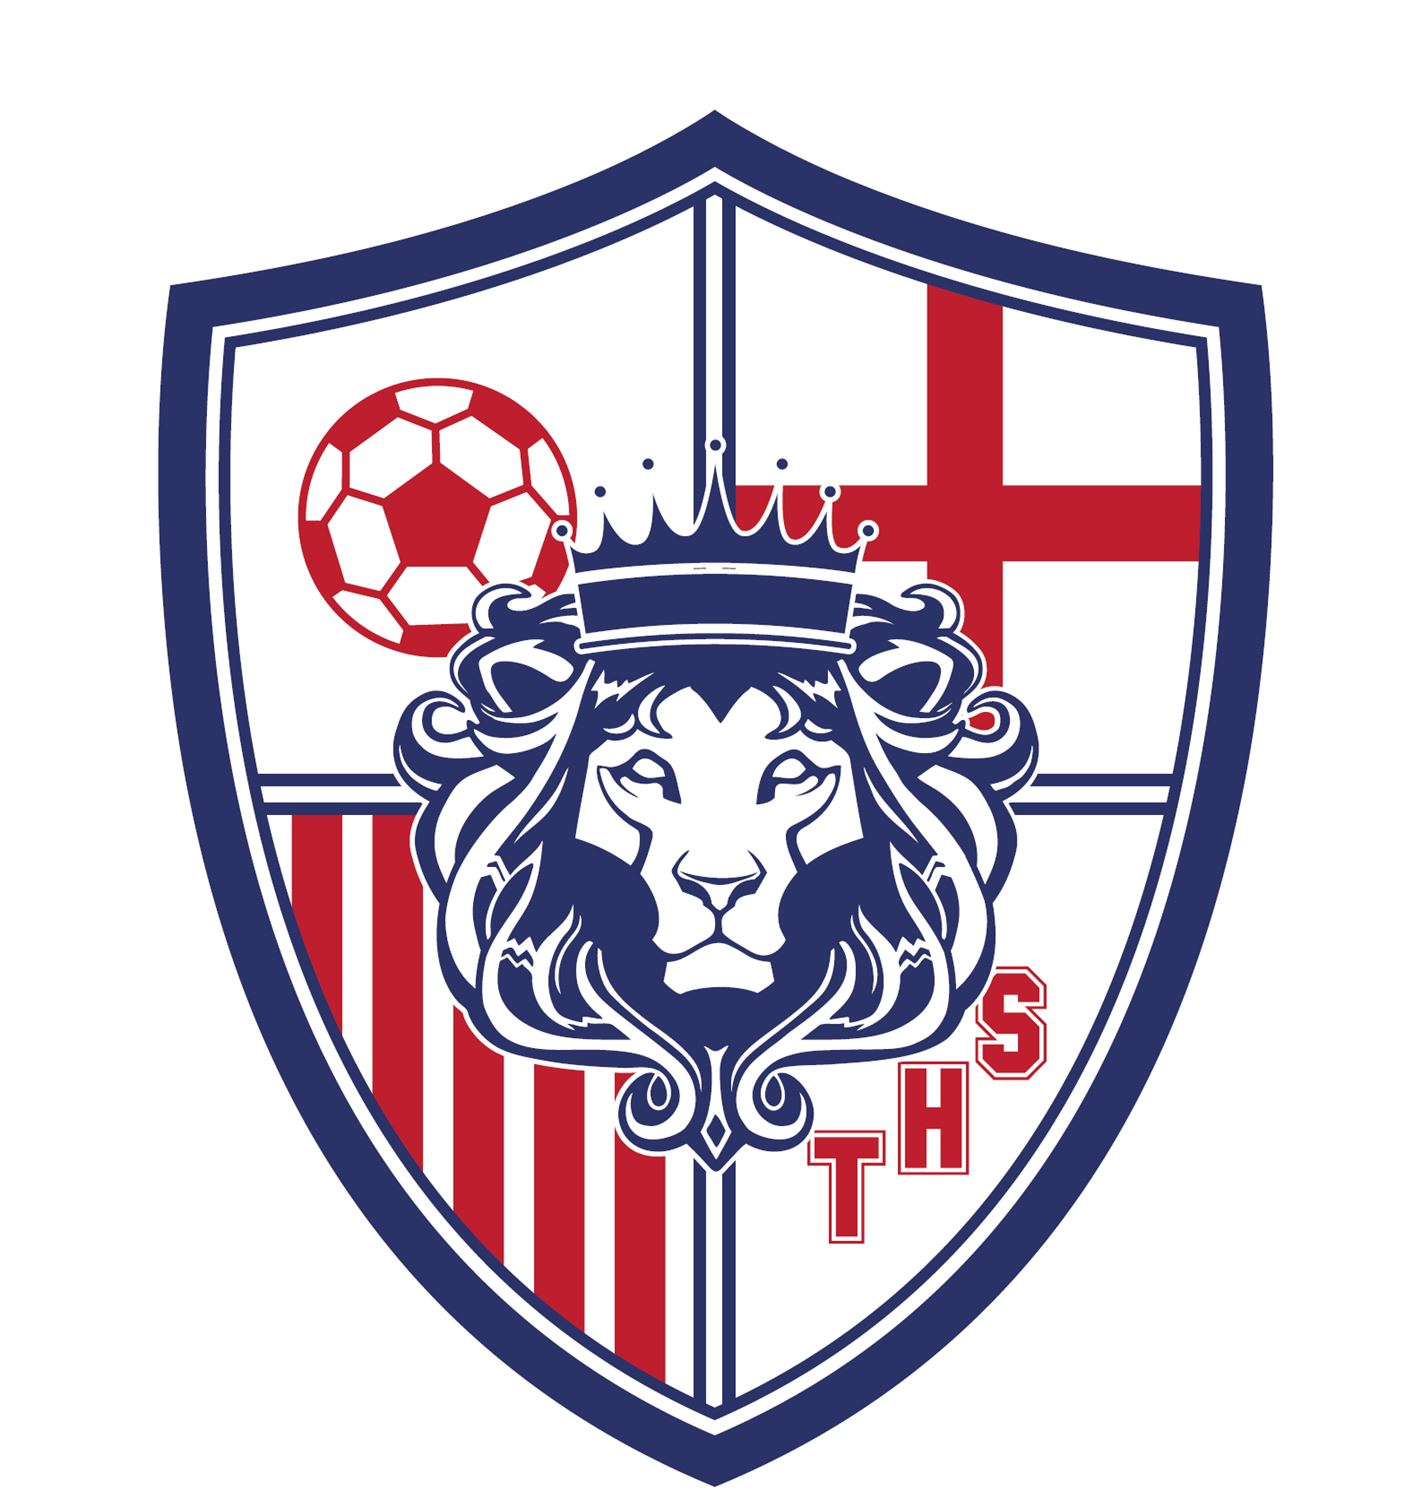 Alief Taylor High School - Boys Soccer -do not use